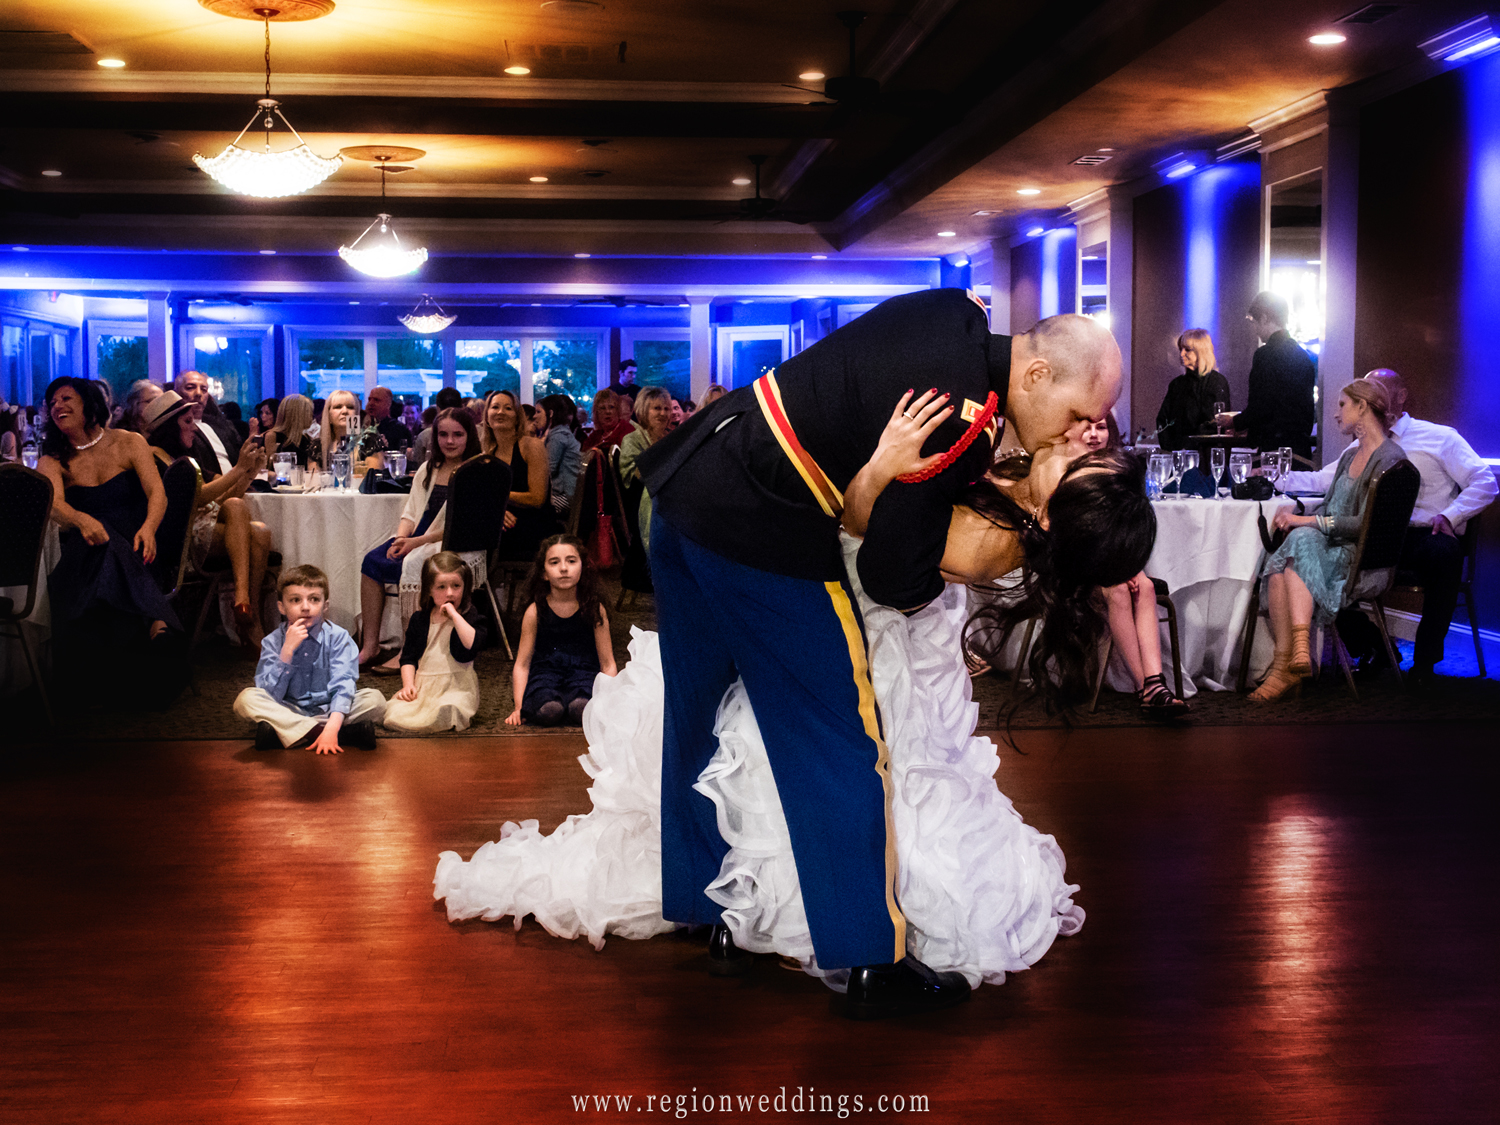 The groom dips his bride during their first dance at White Hawk Country Club.